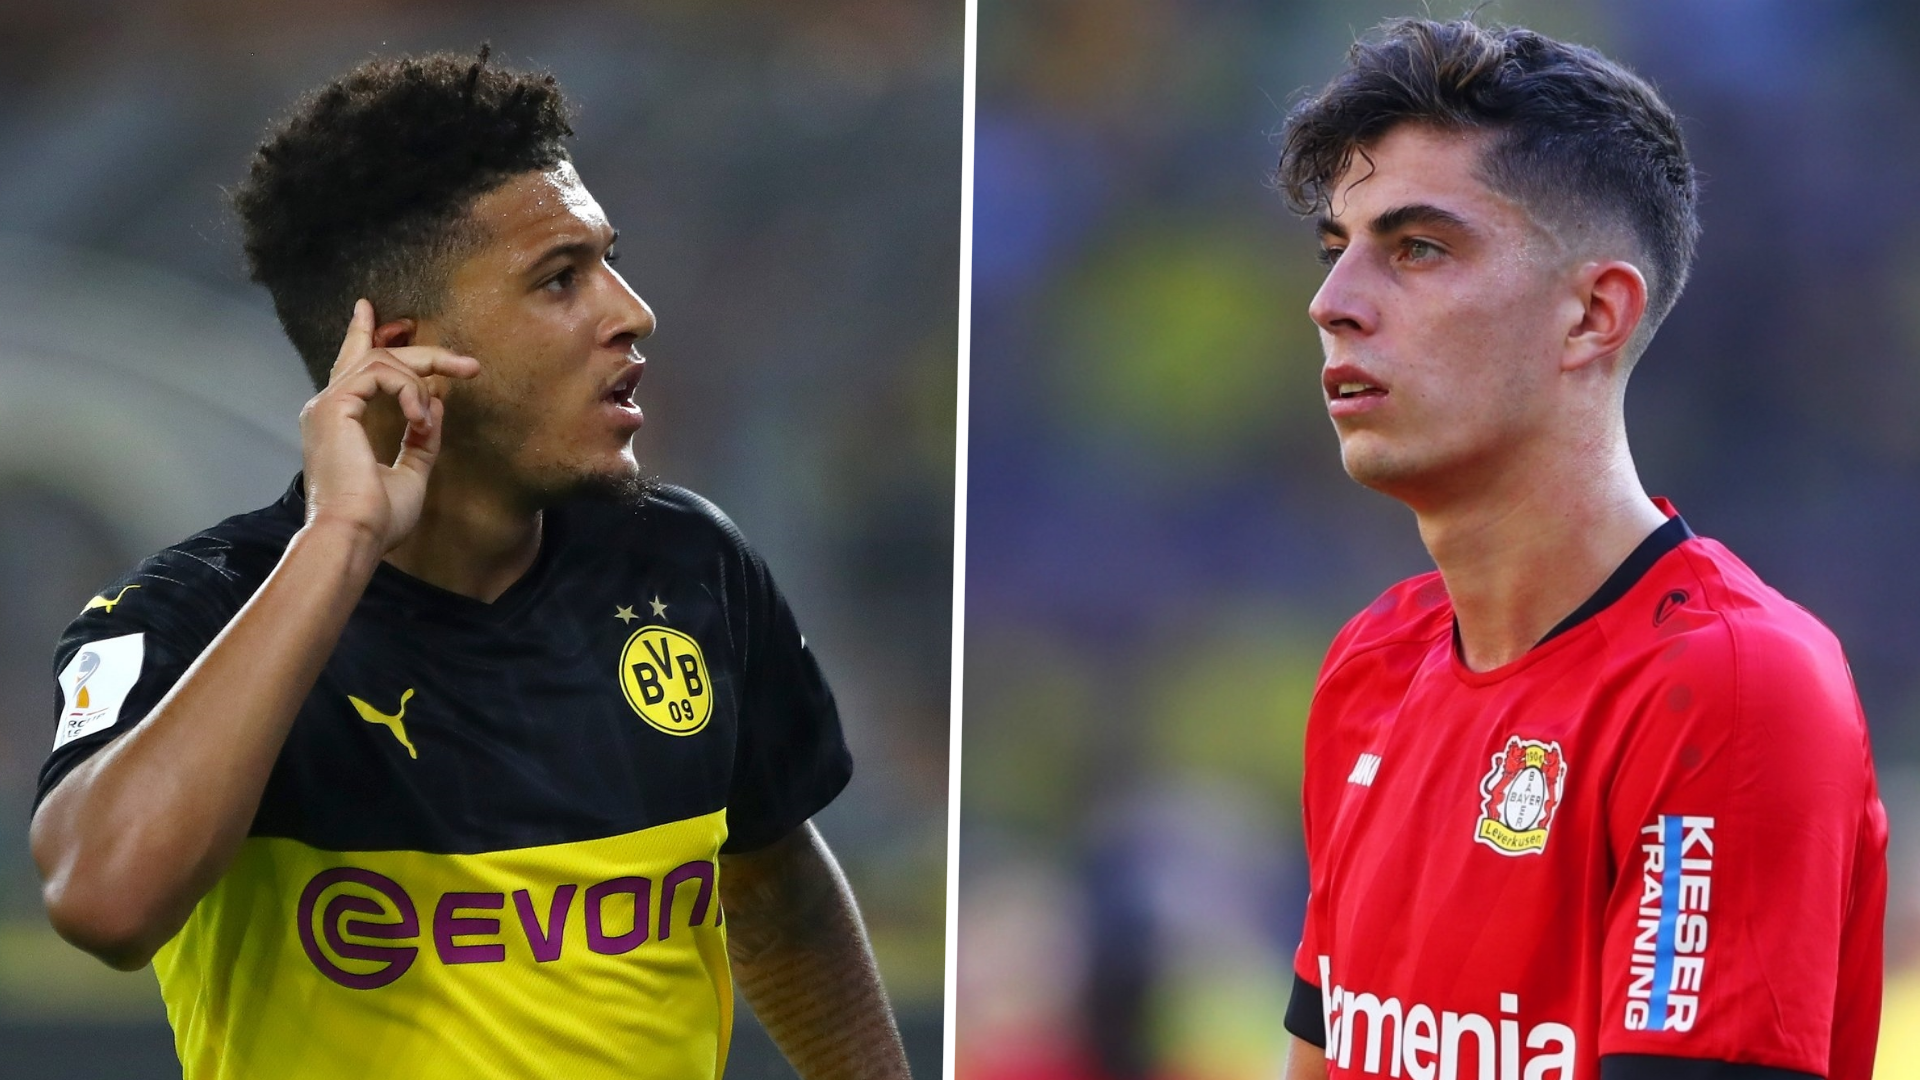 Transfer news and rumours LIVE: Man Utd ready to swoop for Havertz and Sancho